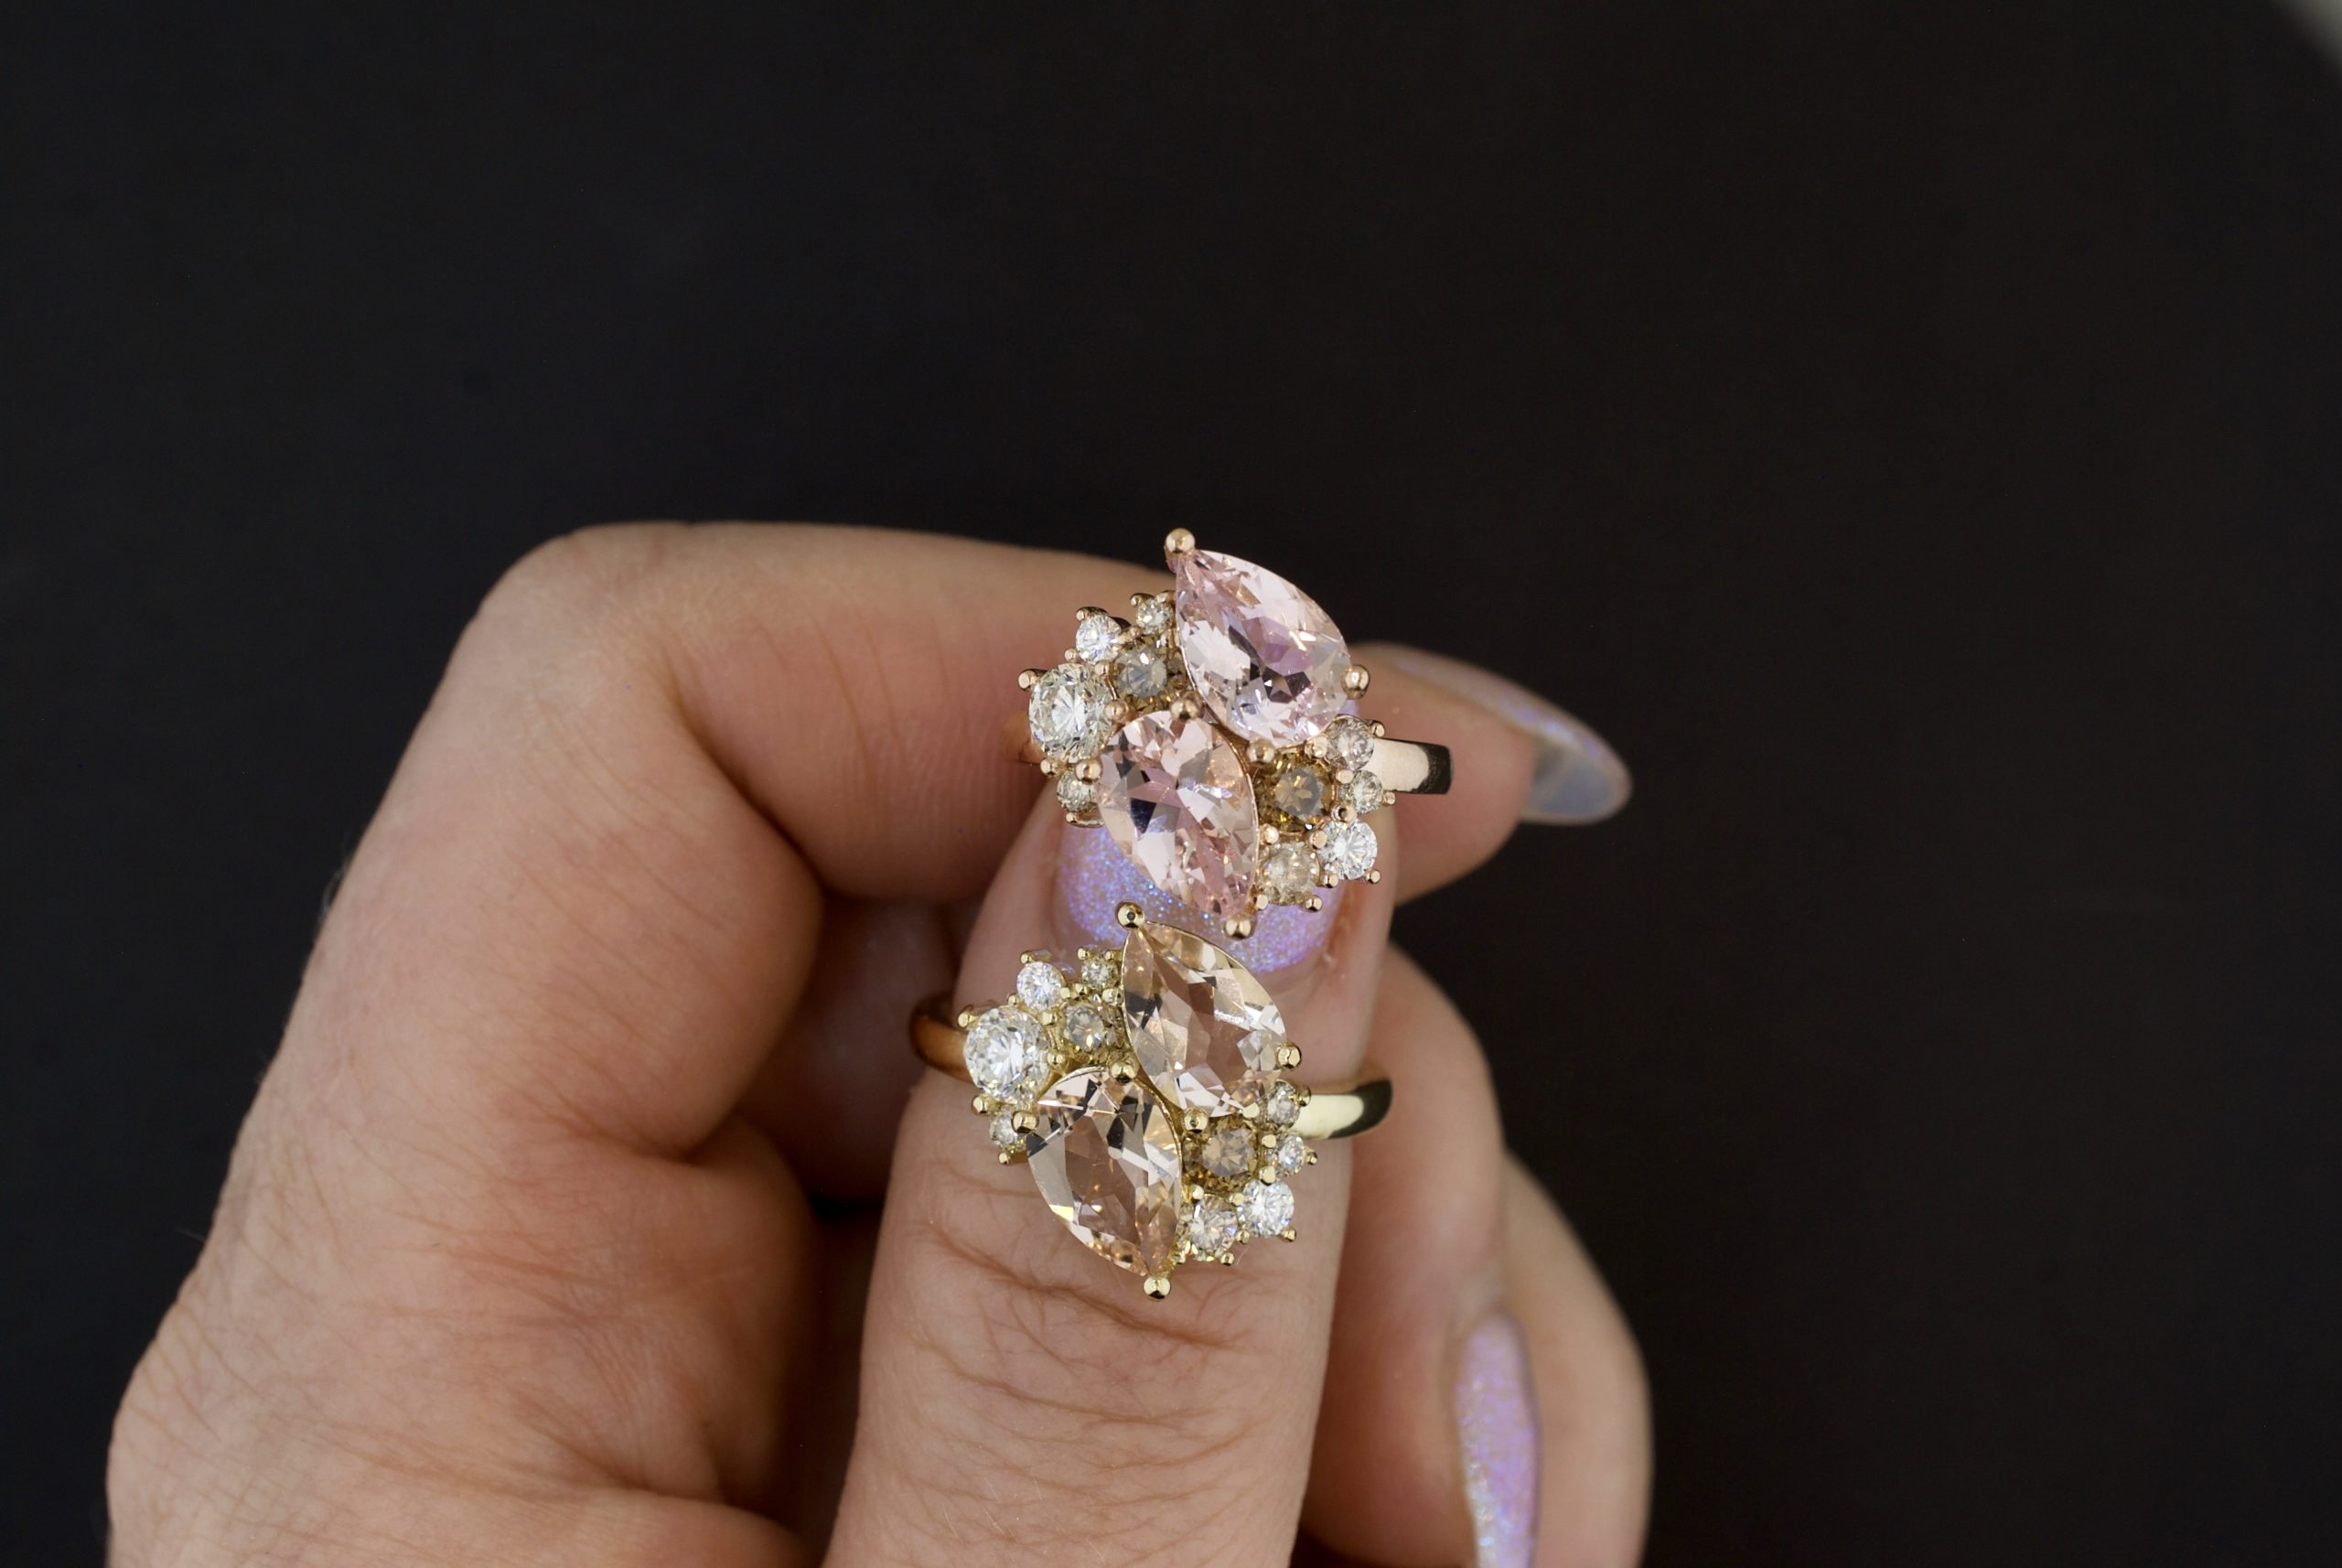 Morganite Engagement Rings: Meaning, Durability, and Types